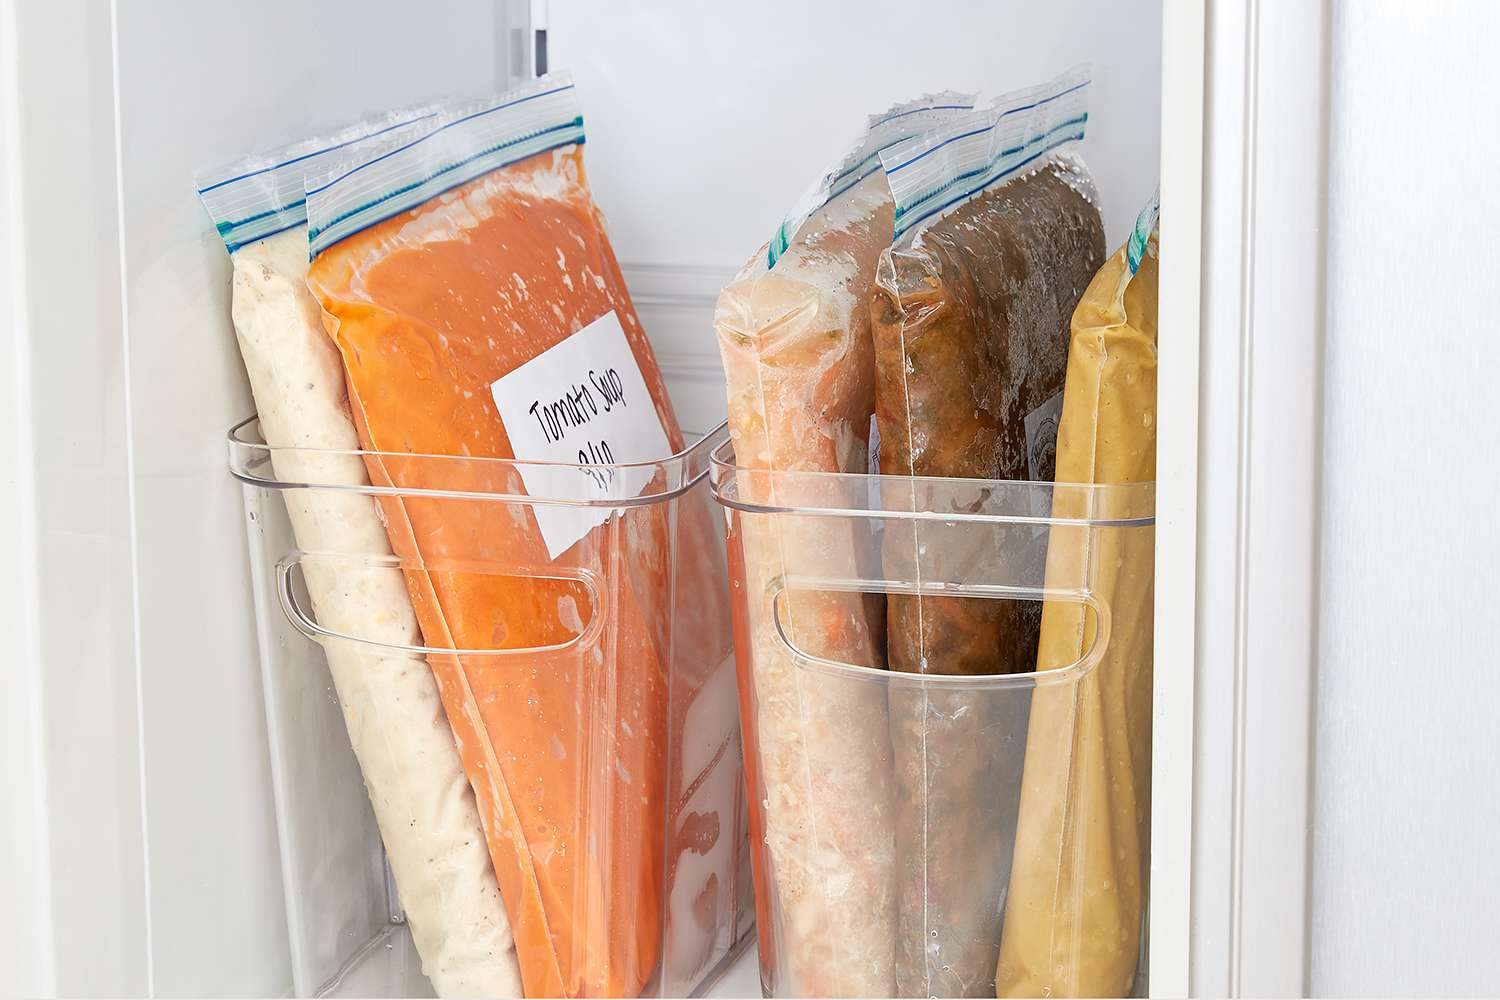 items flattened in freezer bags